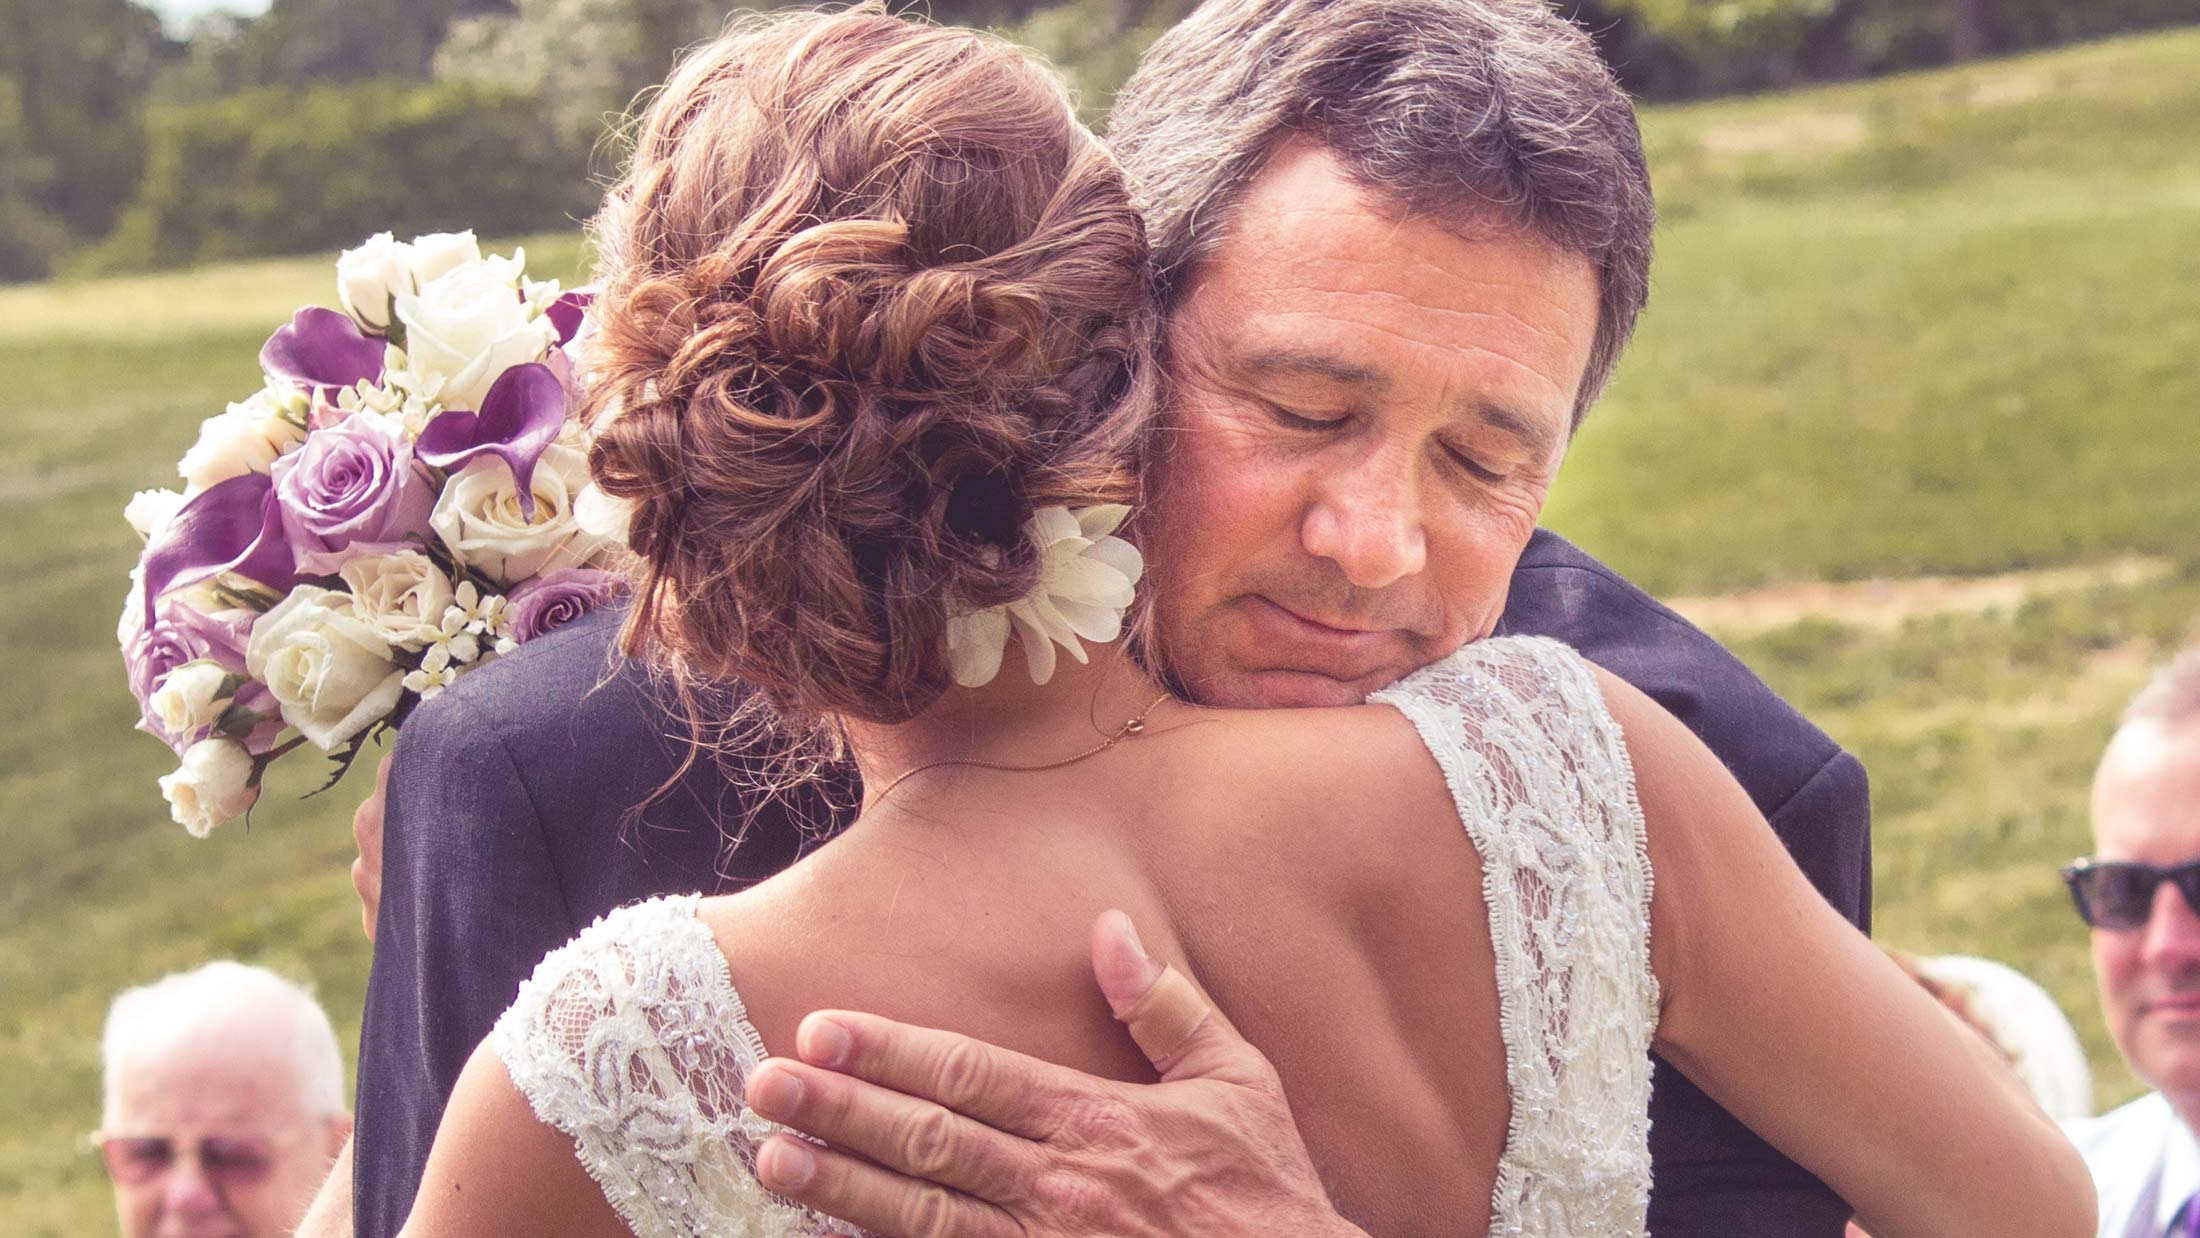 father-daughter-wedding-photo-full-cover